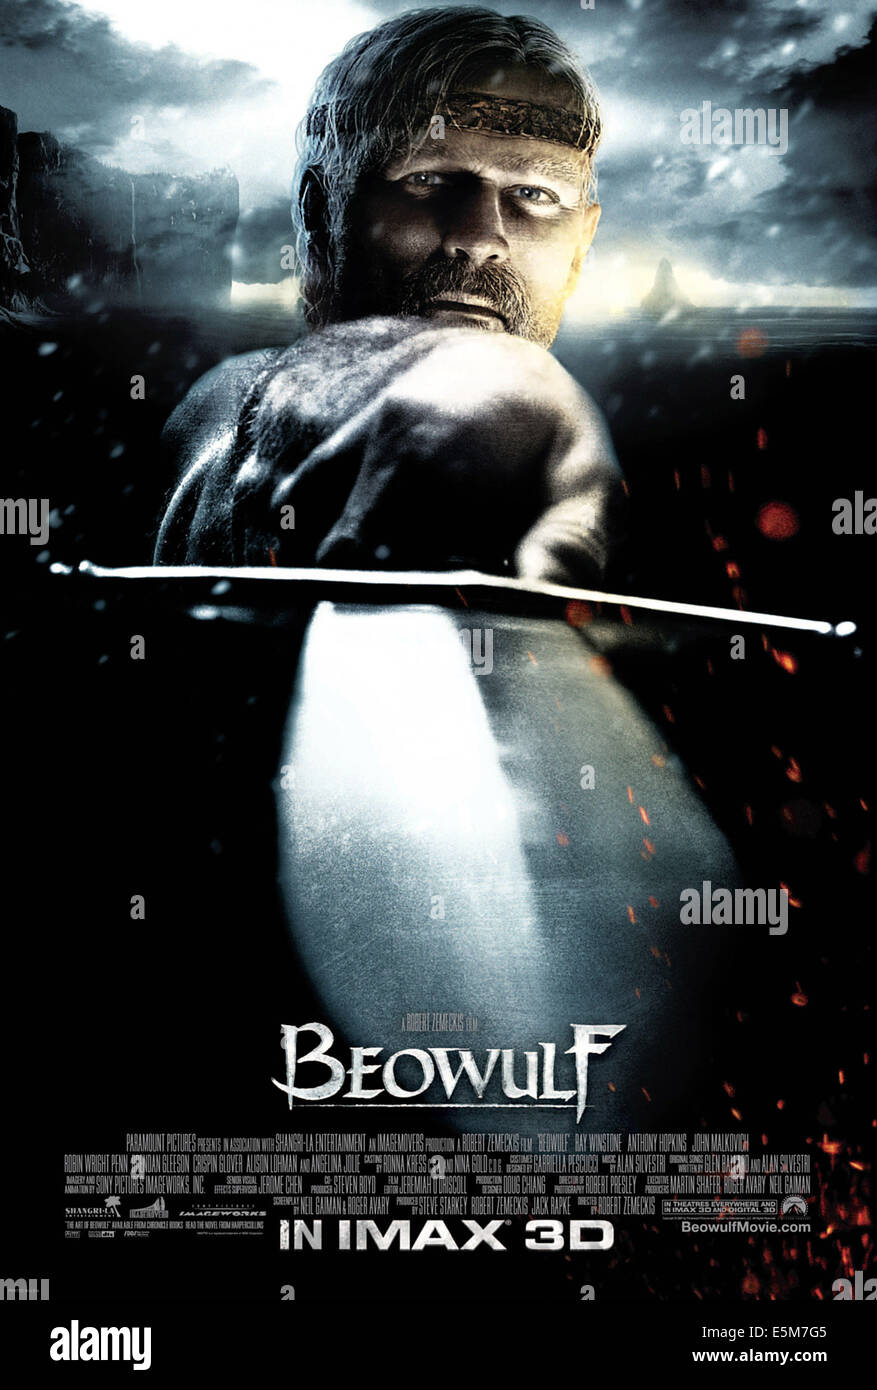 BEOWULF, Ray Winstone, 2007. ©Paramount/Courtesy Everett Collection - Stock Image